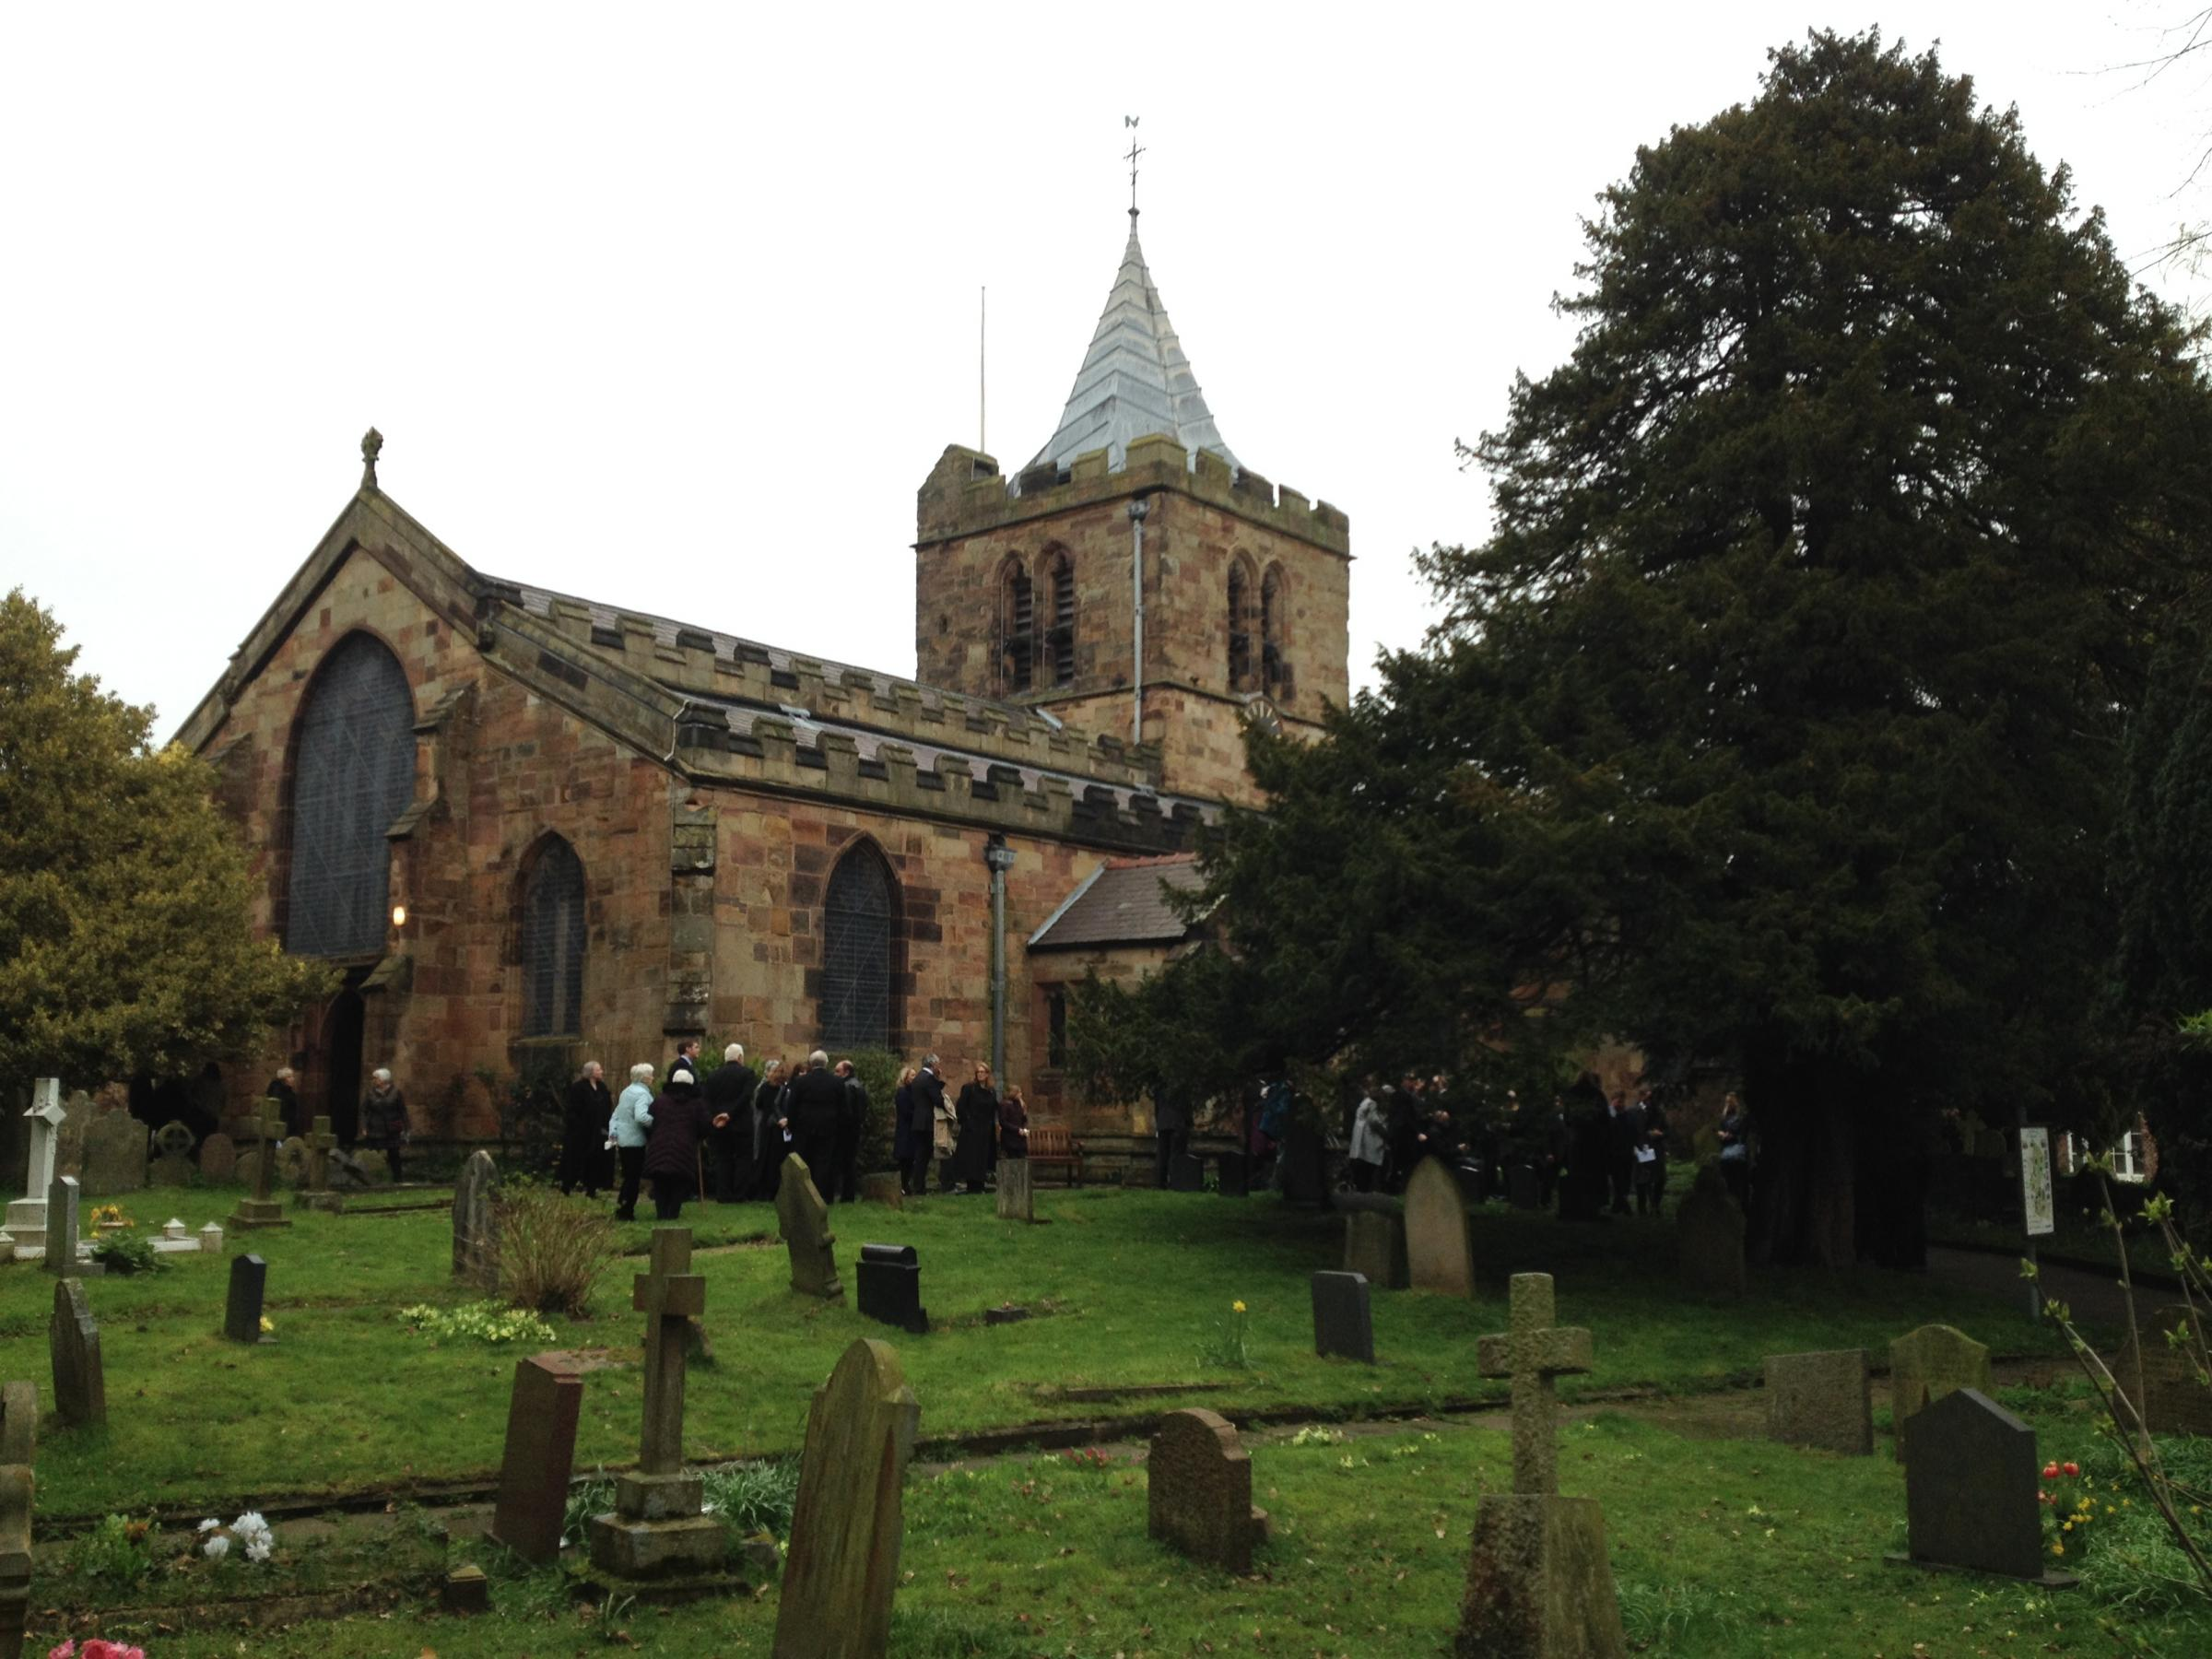 Mourners at the funeral of Sir William Gladstone